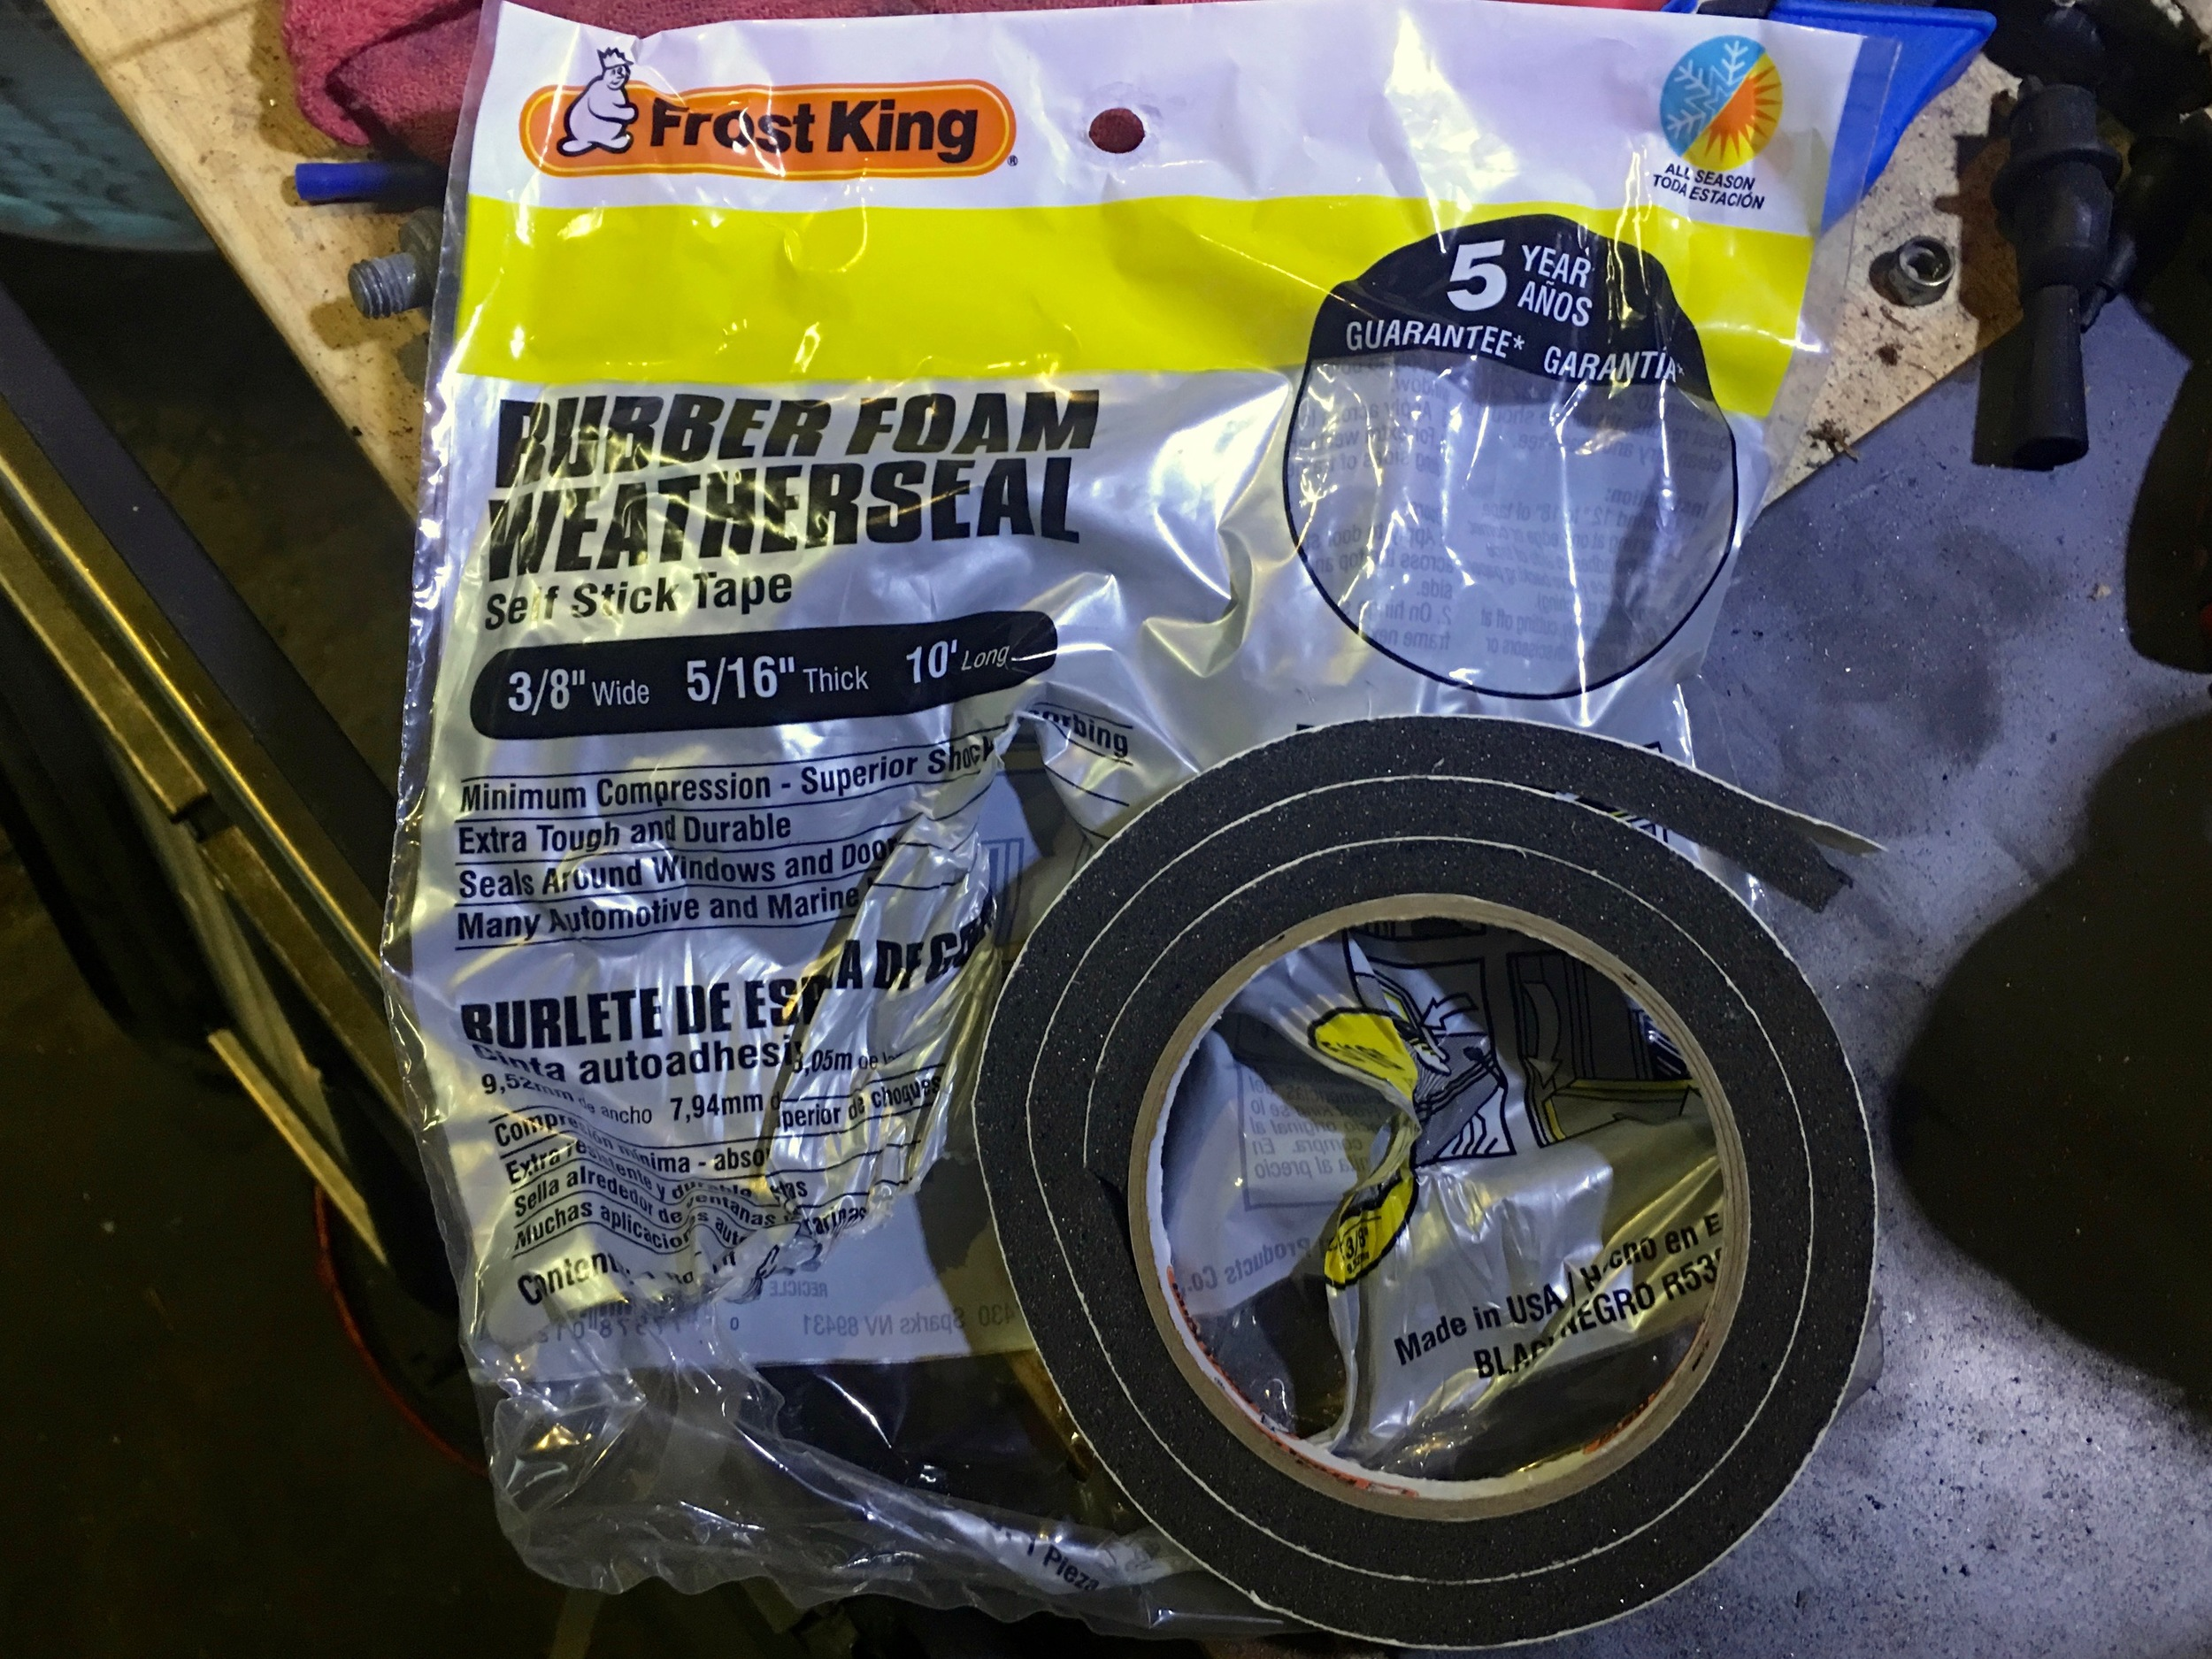 The foam rubber weatherstripping I used. Two rolls were enough for the entire engine cover.